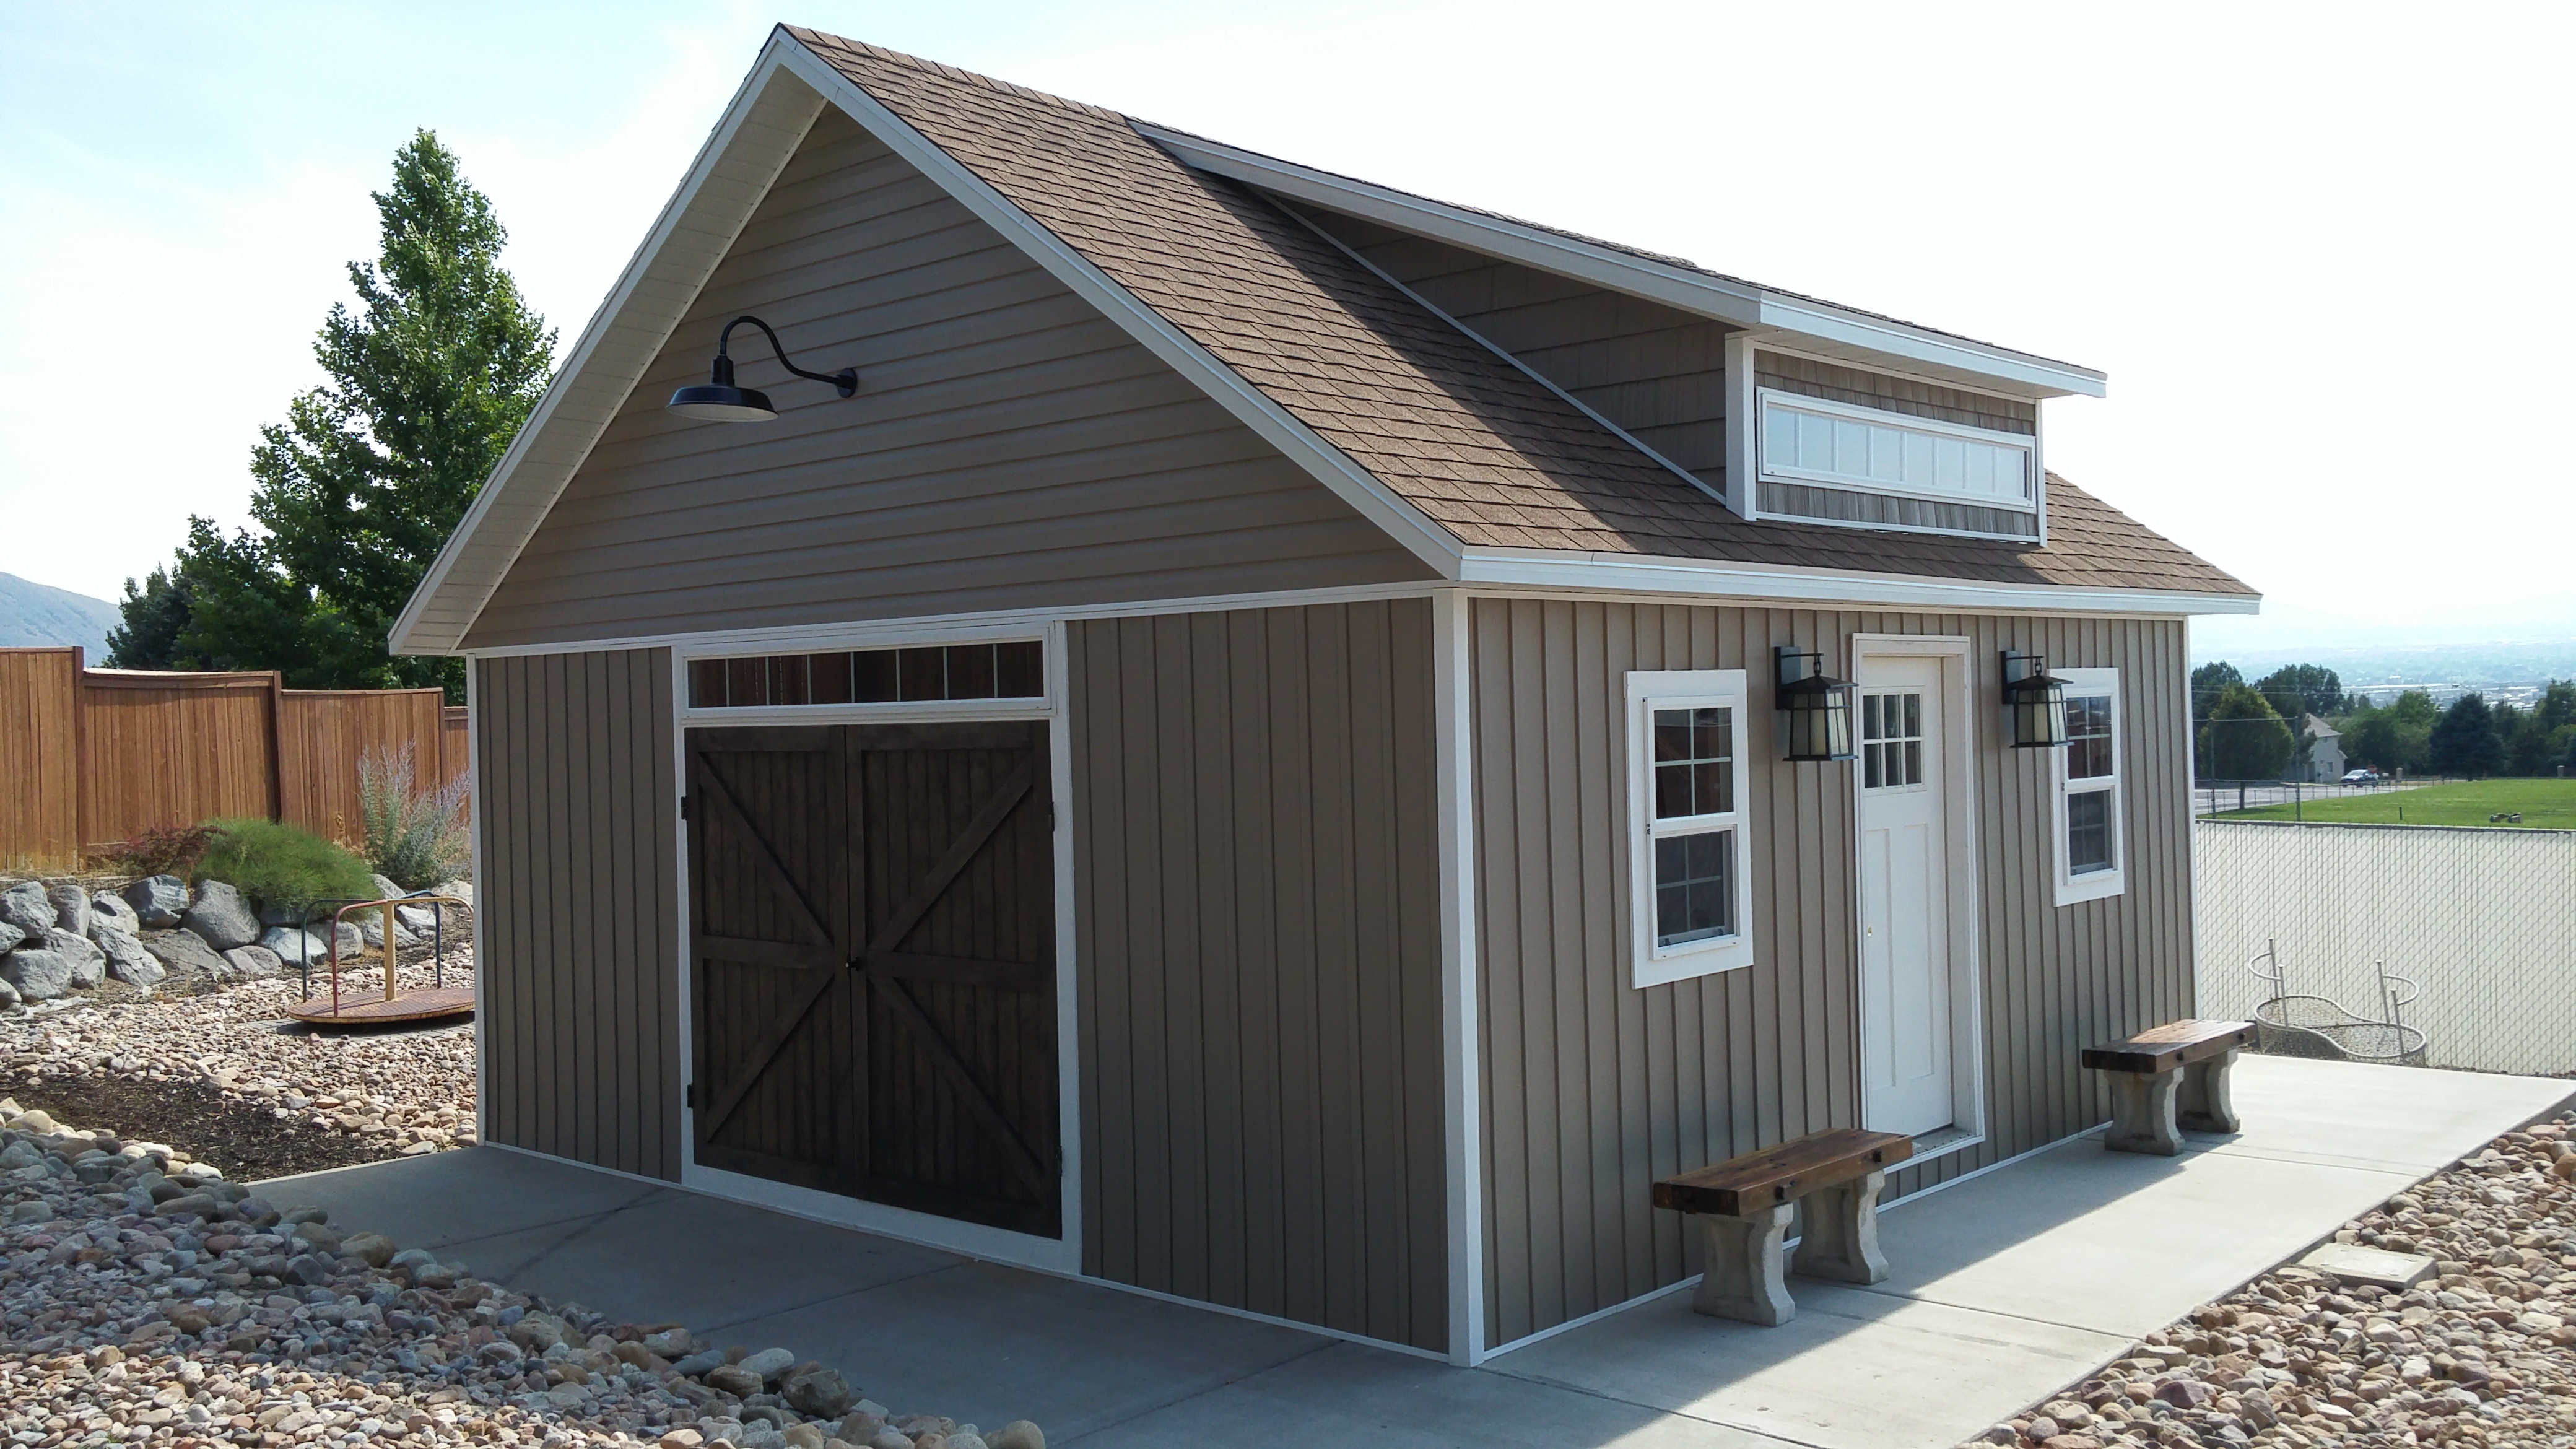 20 X Shed Pictures To Pin On Pinterest PinsDaddy